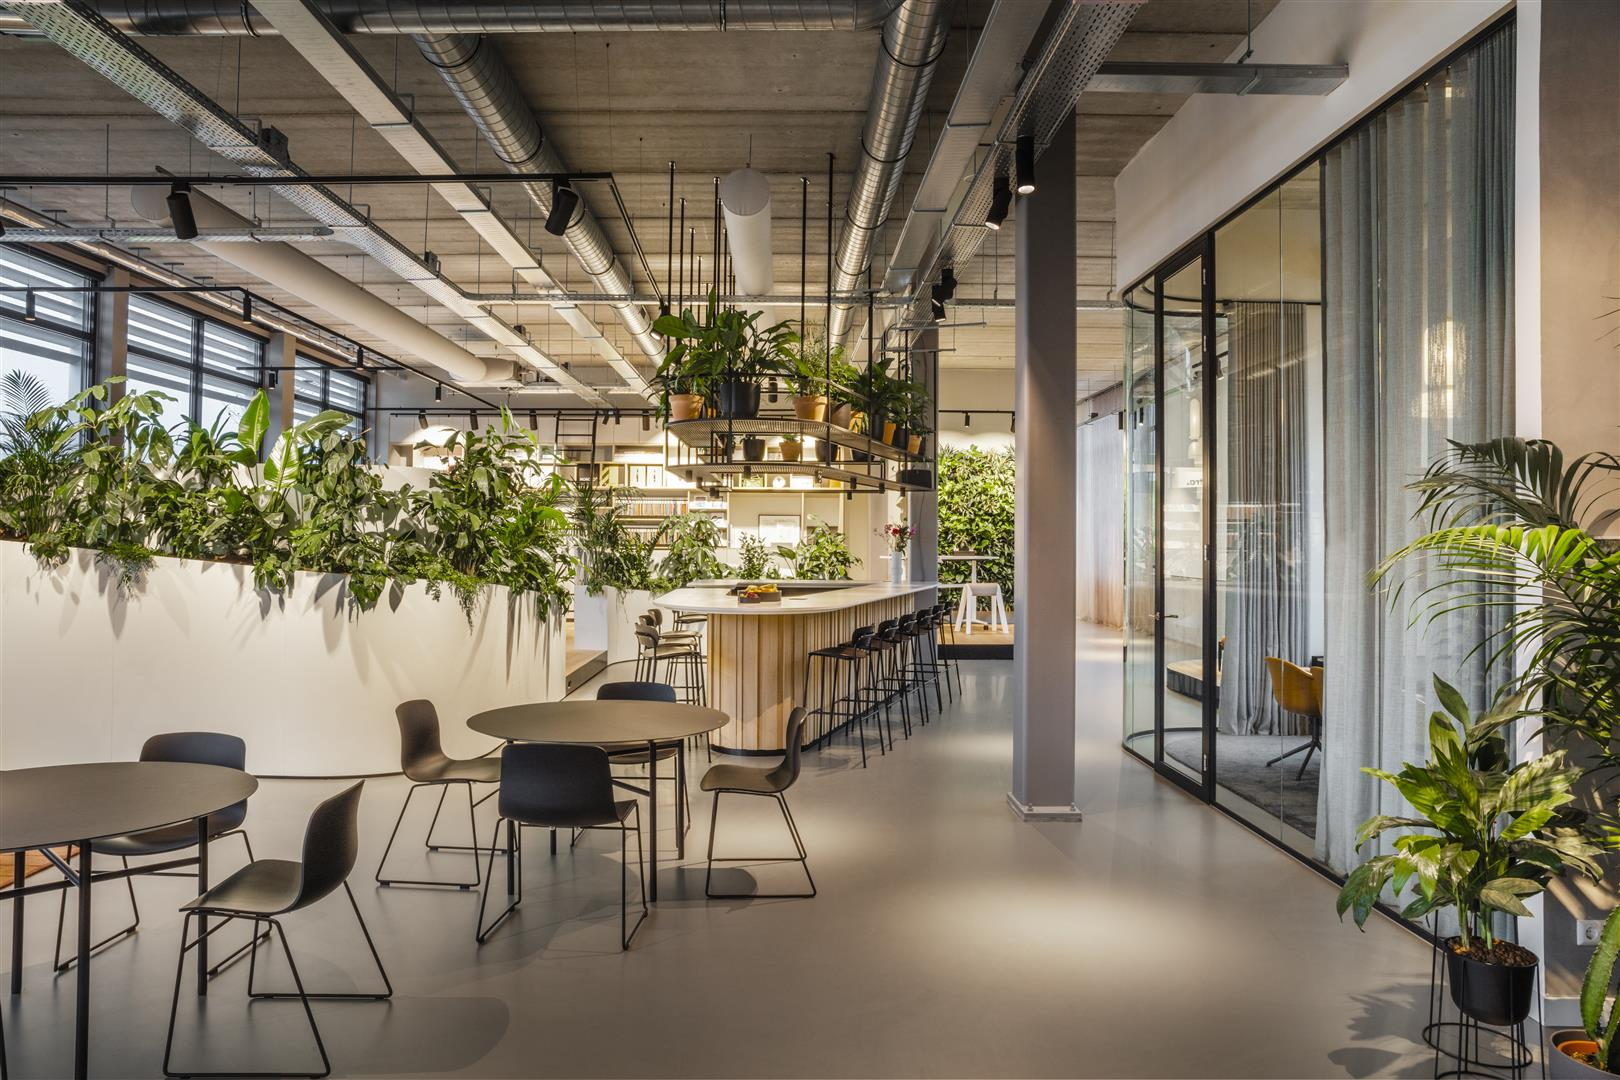 Experiencing the outdoors inside at the InteriorWorks office in Amsterdam, The Netherlands (photo credit: Rick Geenjaar)